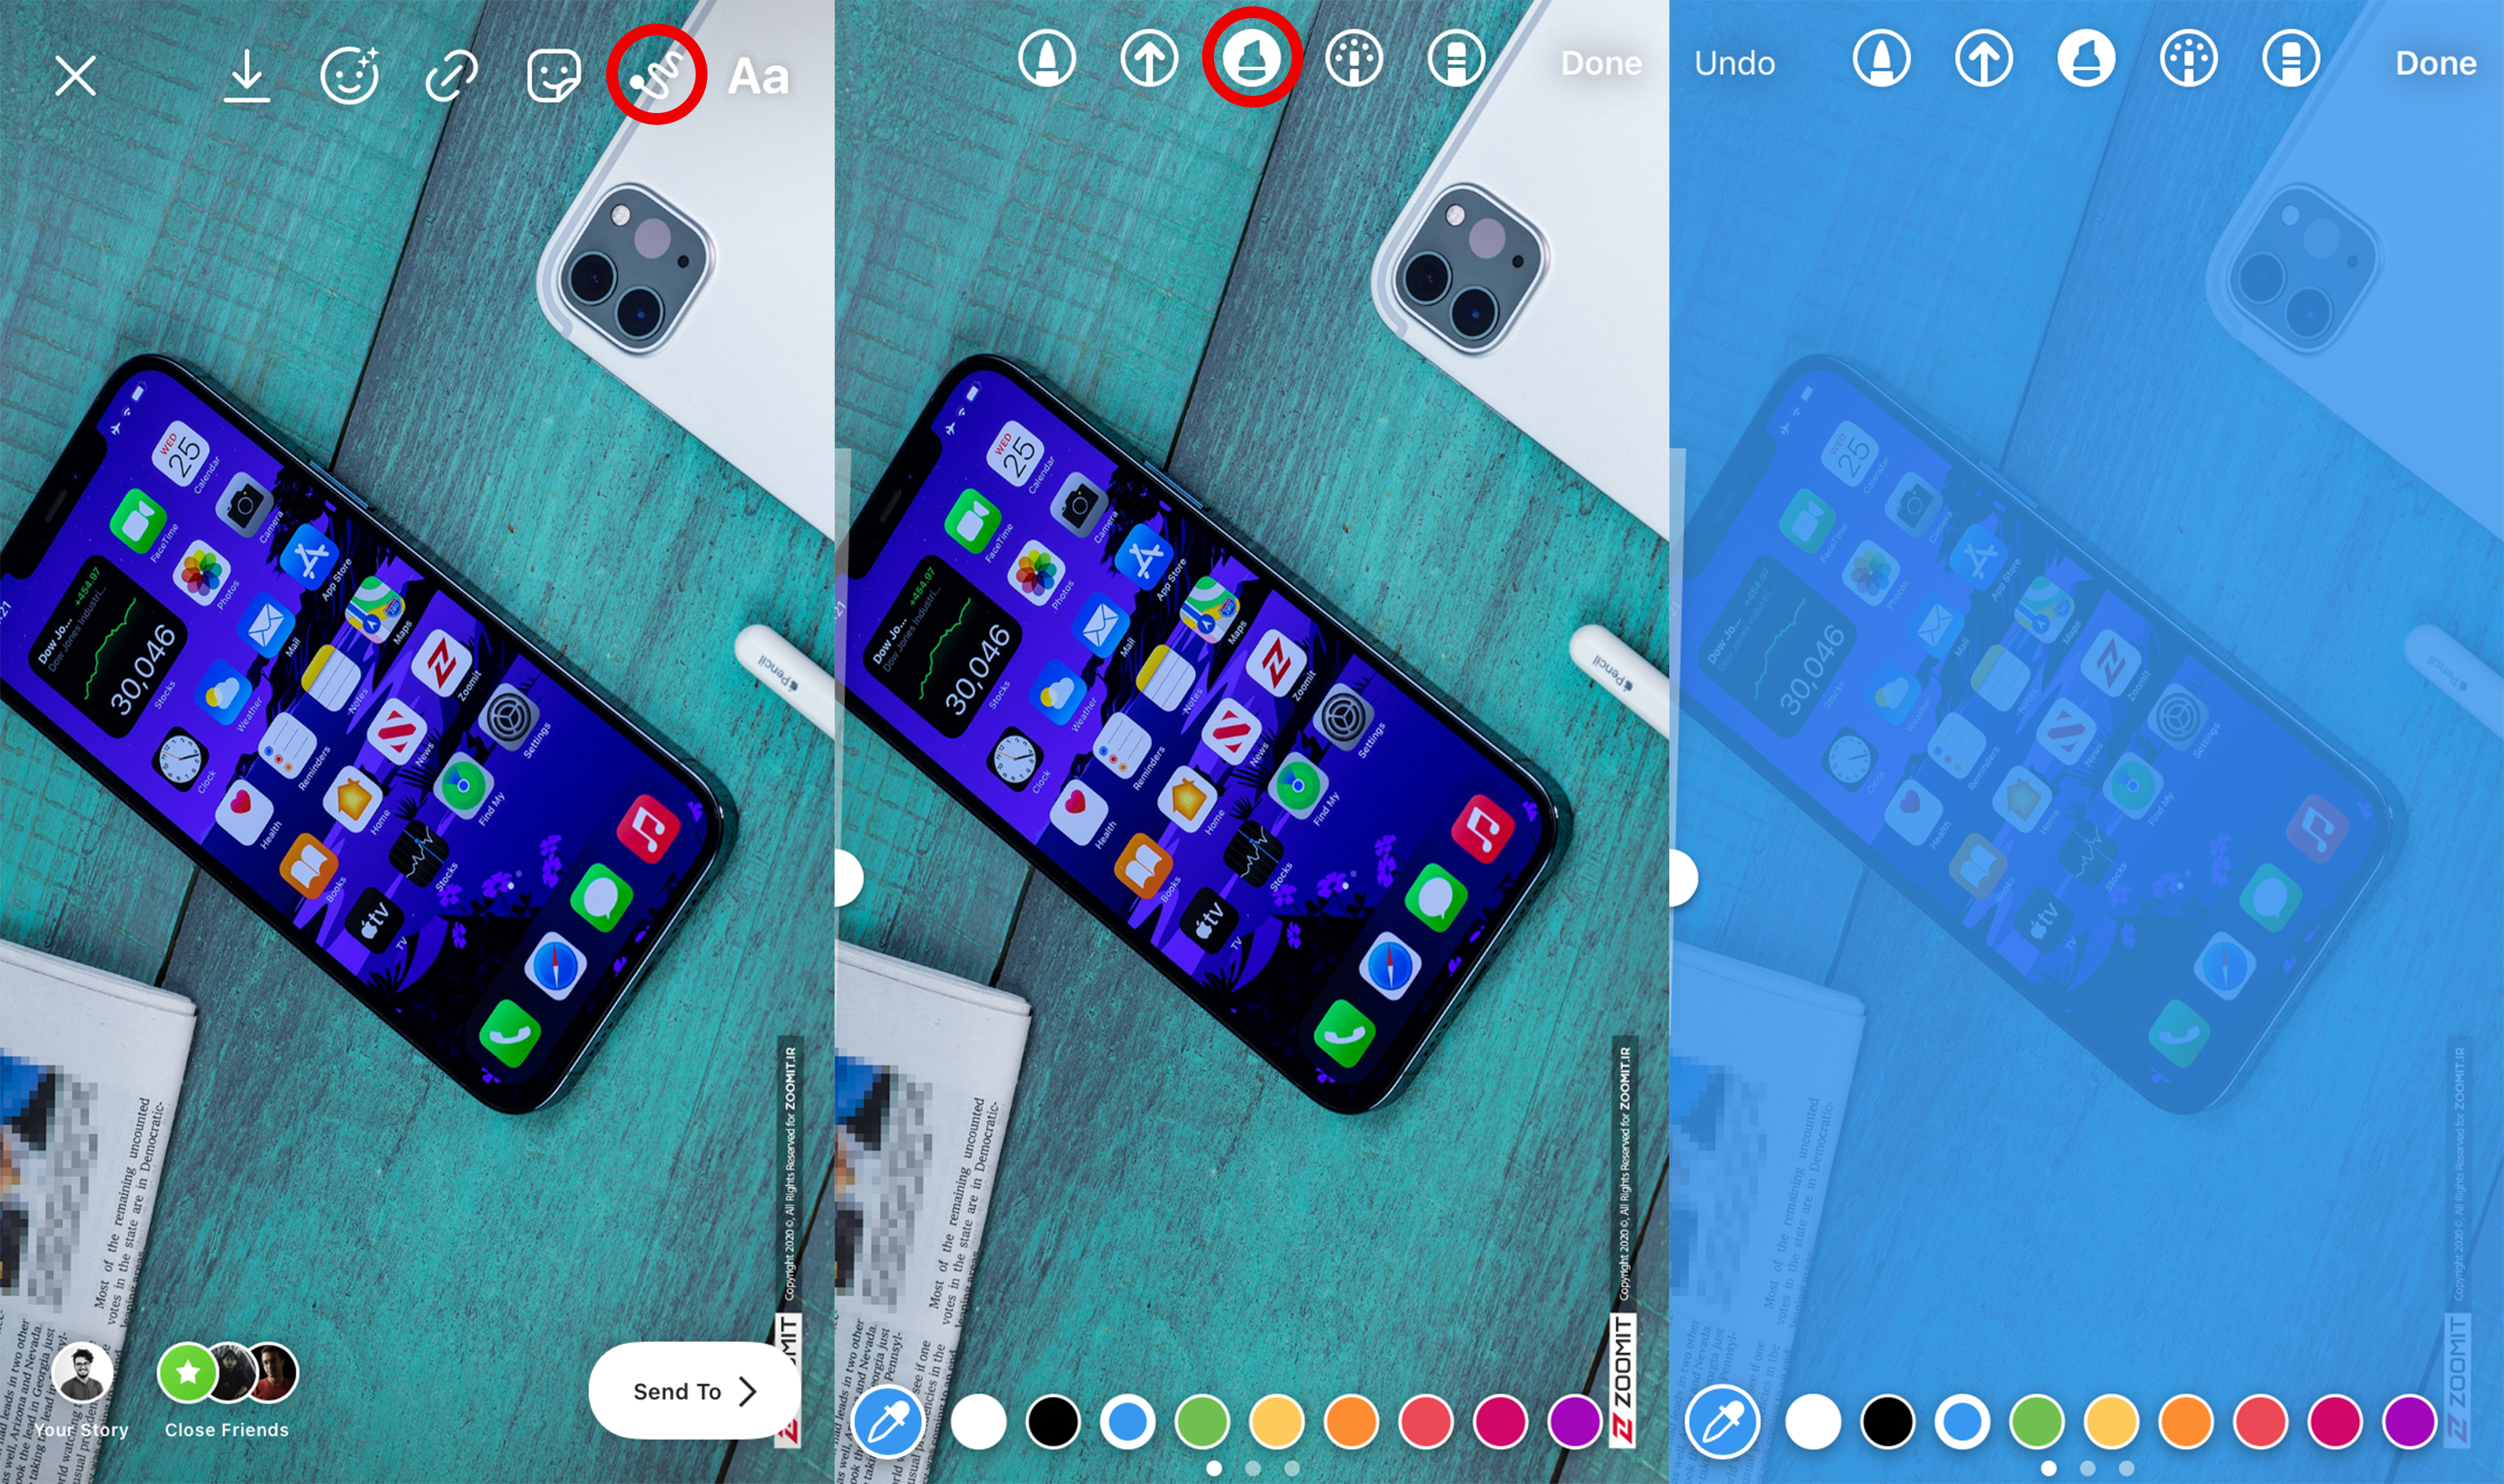 Learn how to create a colorful background with low transparency in your Instagram story